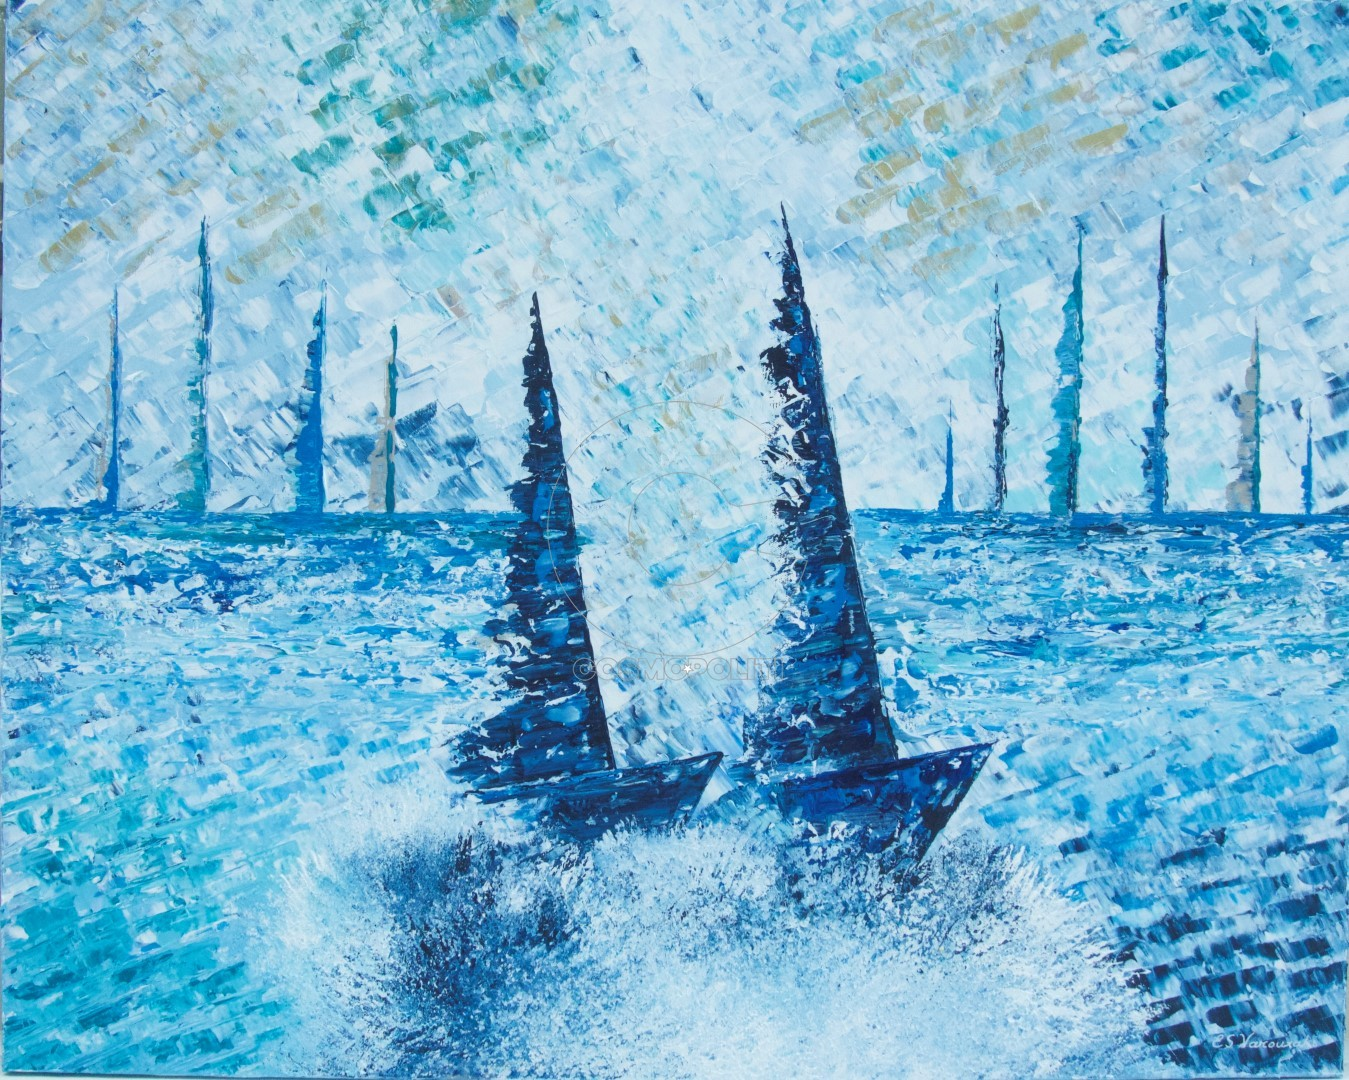 Eleni Sameli Varouxakis, Couleurs d'été 3, 100x80cm, Acrylics on canvas